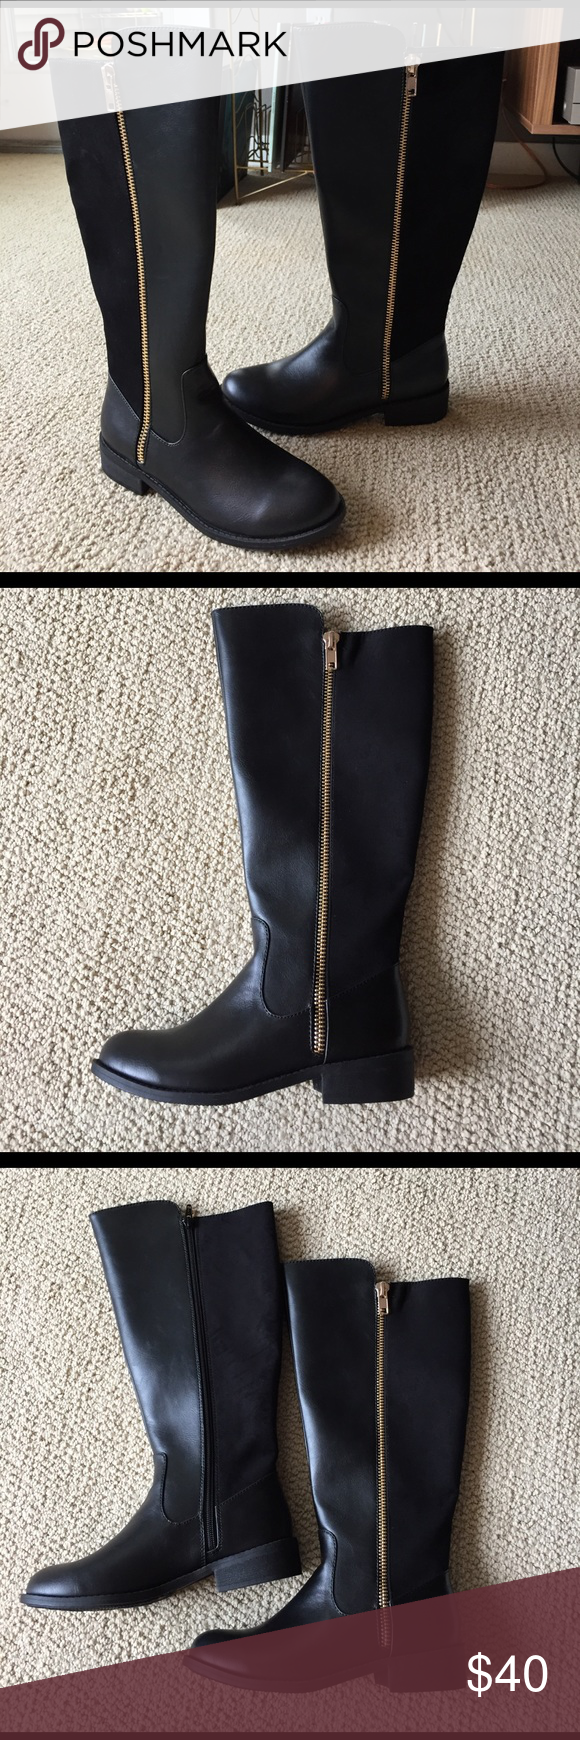 Knee high zipped up boots LC Lauren Conrad faux suede/faux leather boots with sexy metal gold side zipped. New! Never been worn! LC Lauren Conrad Shoes Over the Knee Boots